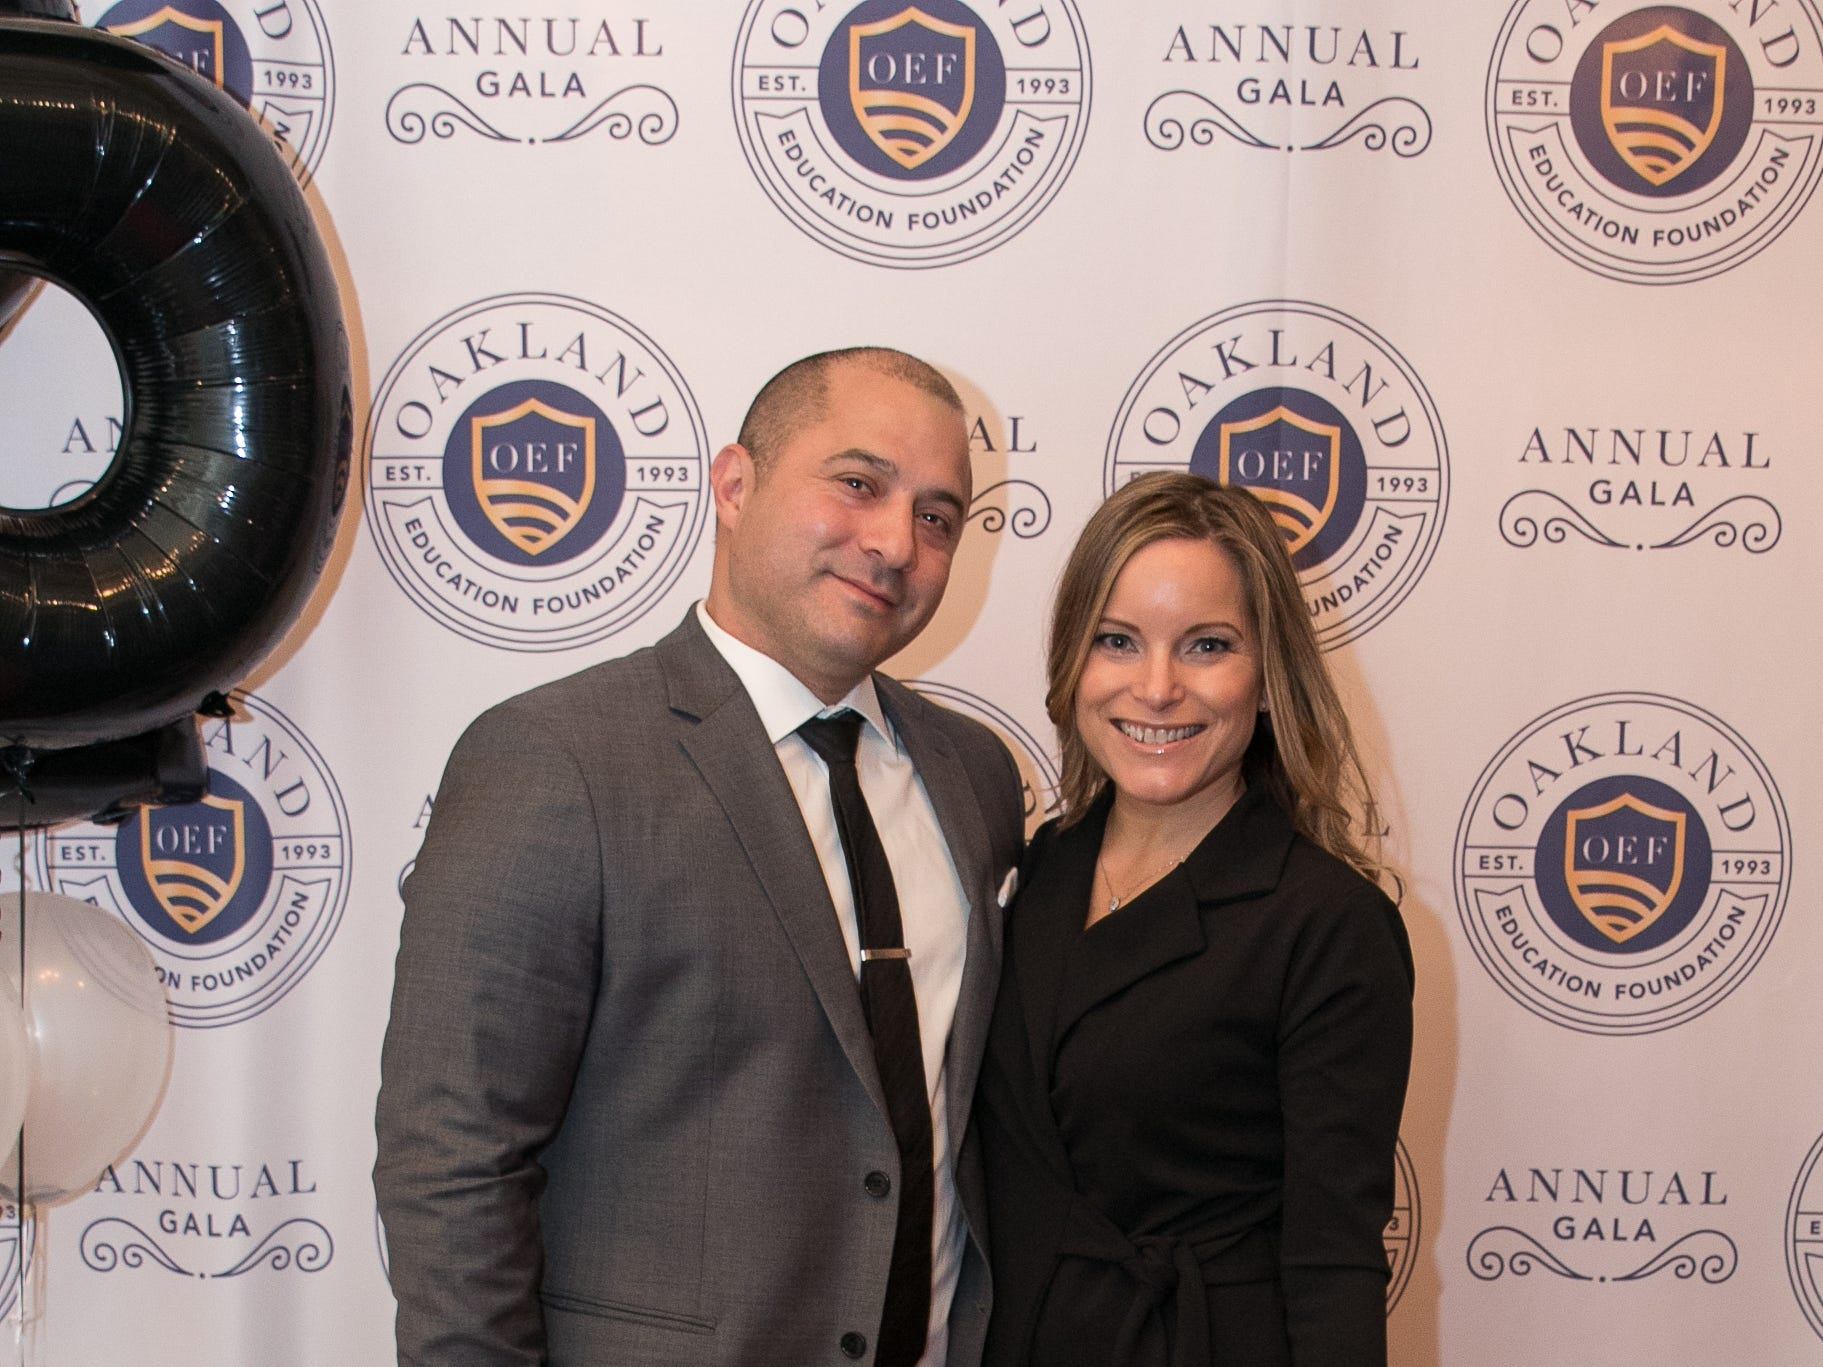 Jeff Ramirez, Lori Nittoli. The Oakland Education Foundation held their 25th Anniversary Casino Night Gala at Preakness Hills Country Club in Wayne. 03/16/2019